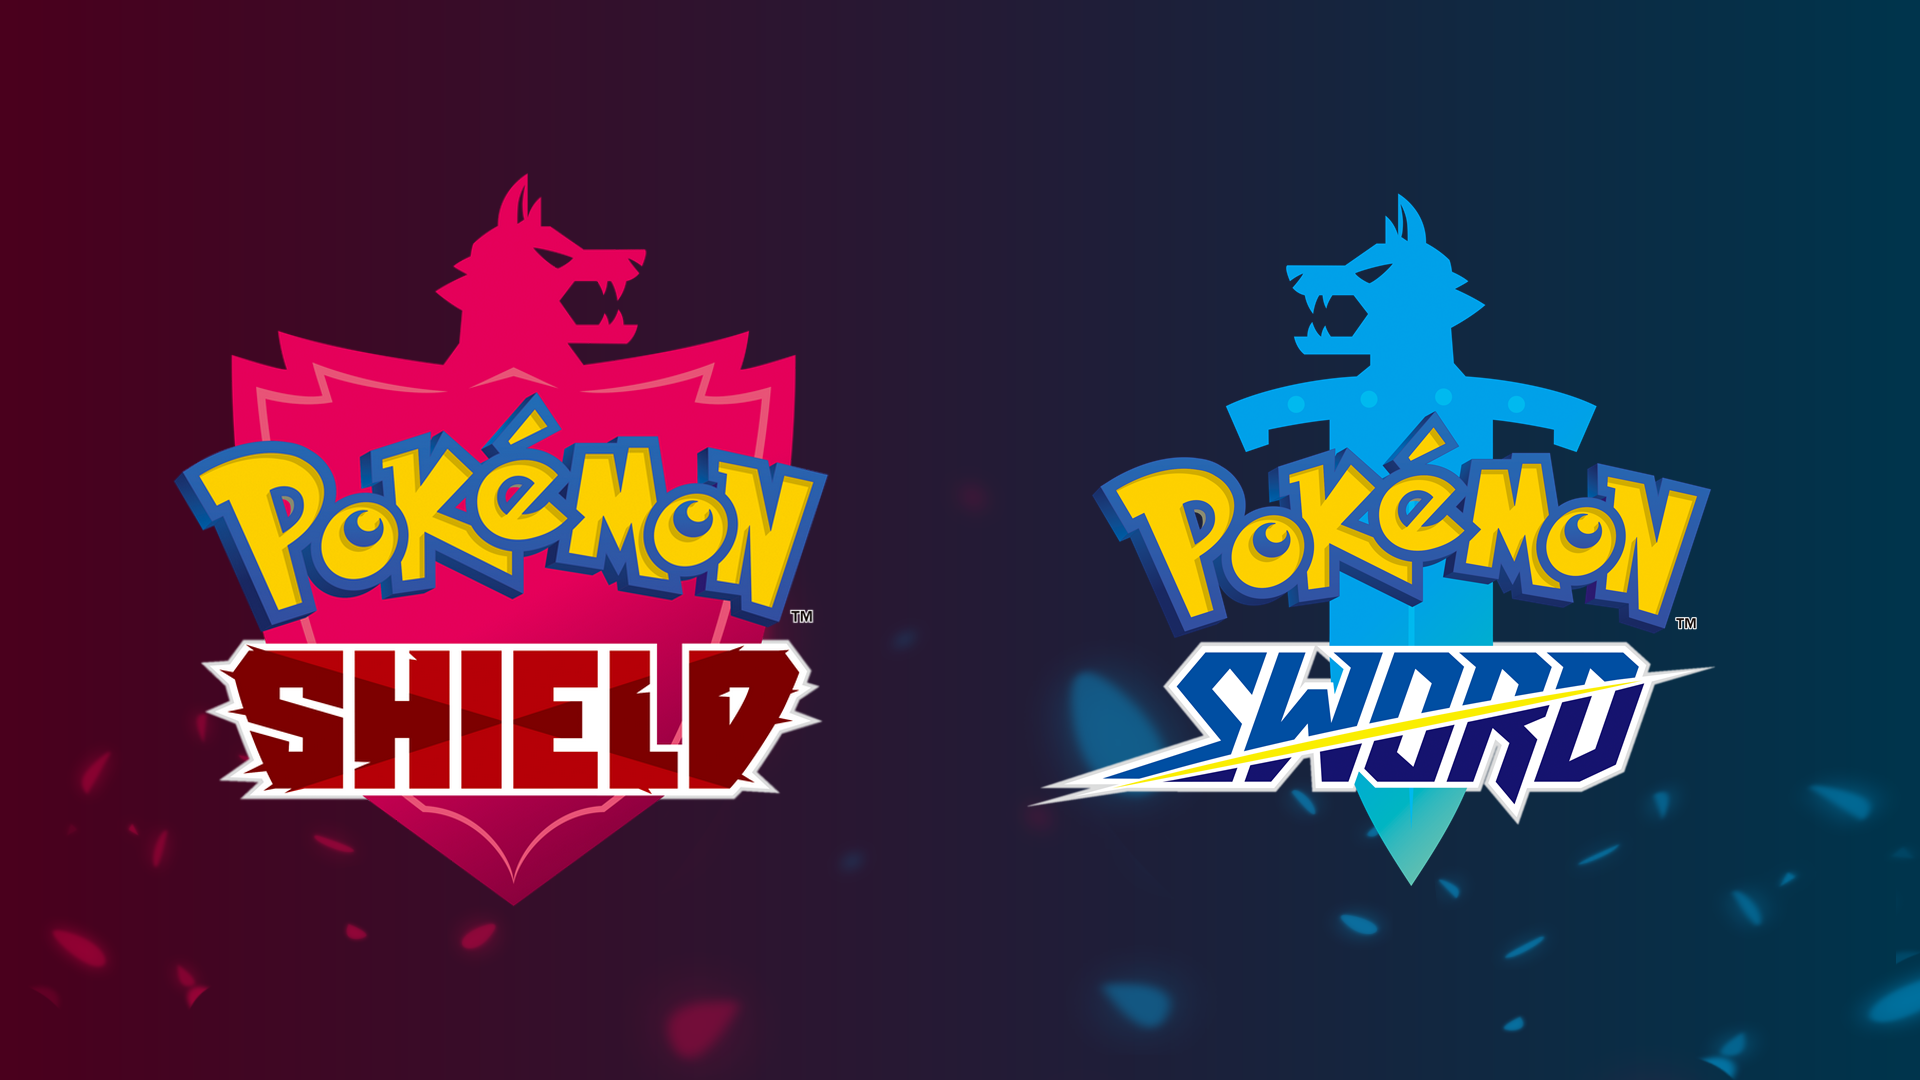 Pokemon Sword And Shield Wallpapers Top Free Pokemon Sword And Shield Backgrounds Wallpaperaccess